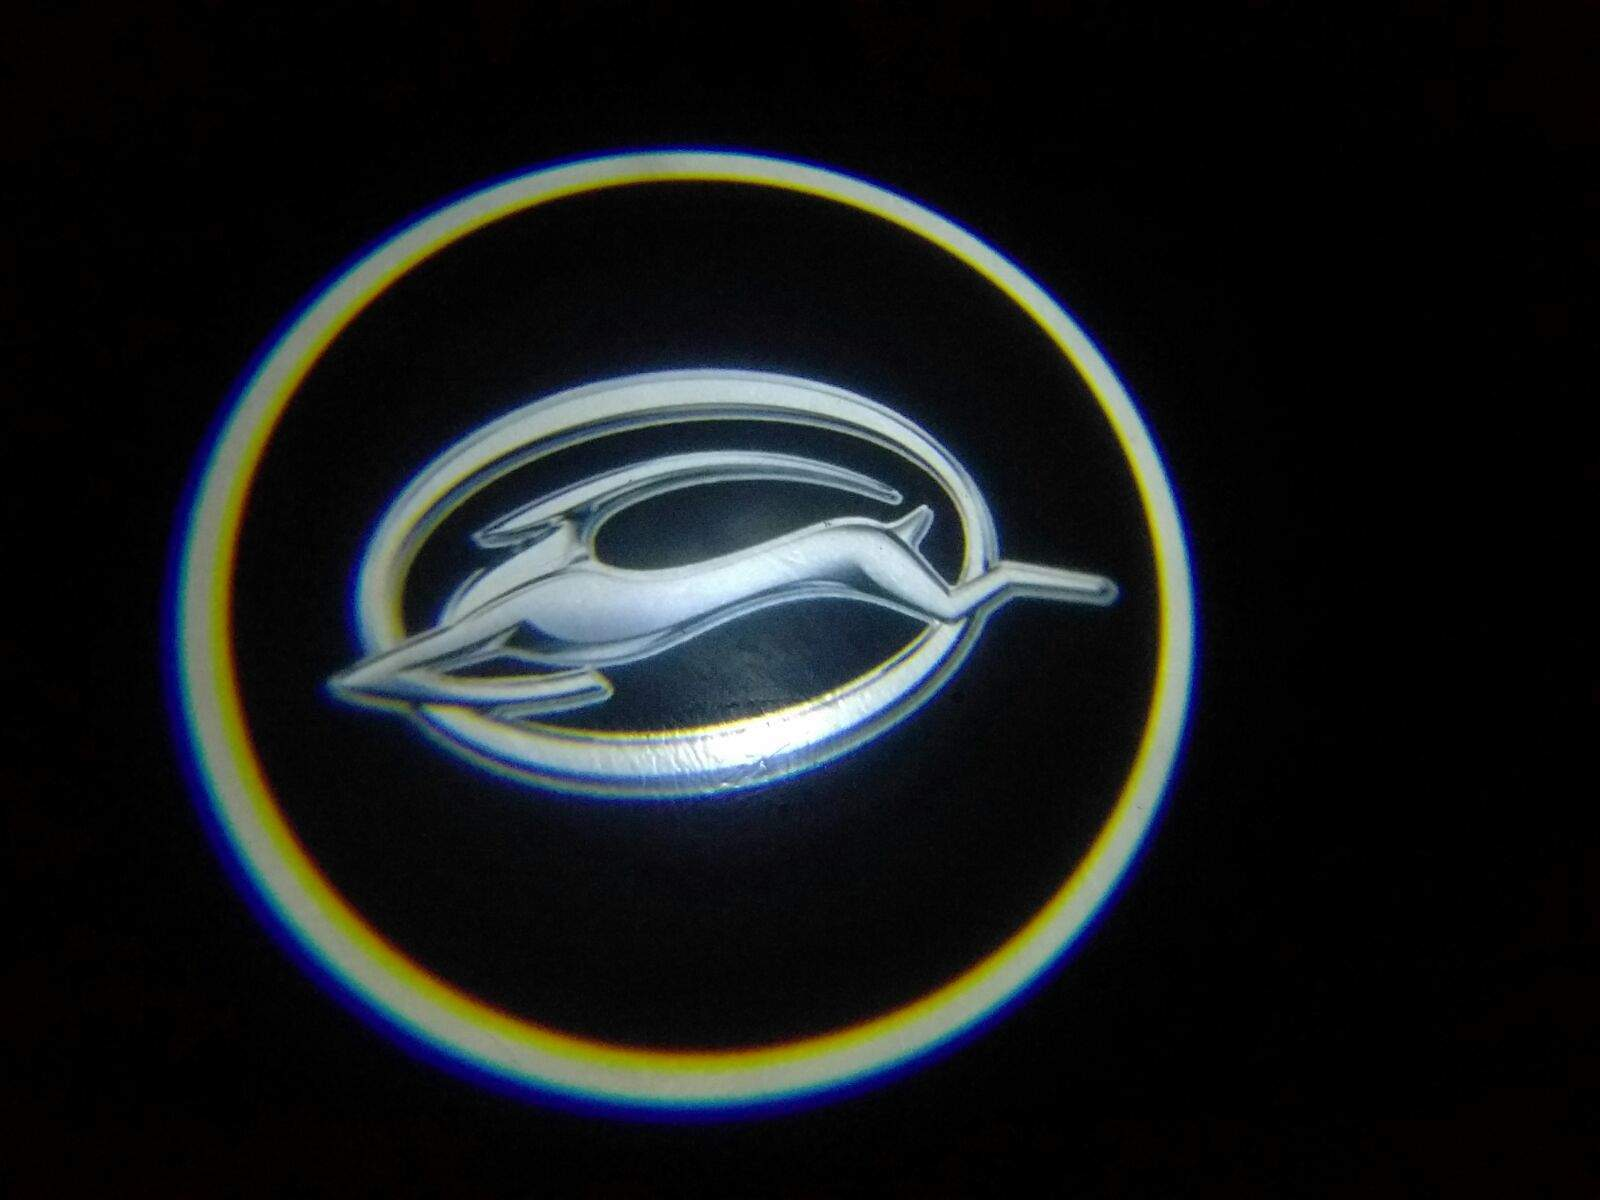 Chevy Impala Door Projector Courtesy Puddle Logo Light